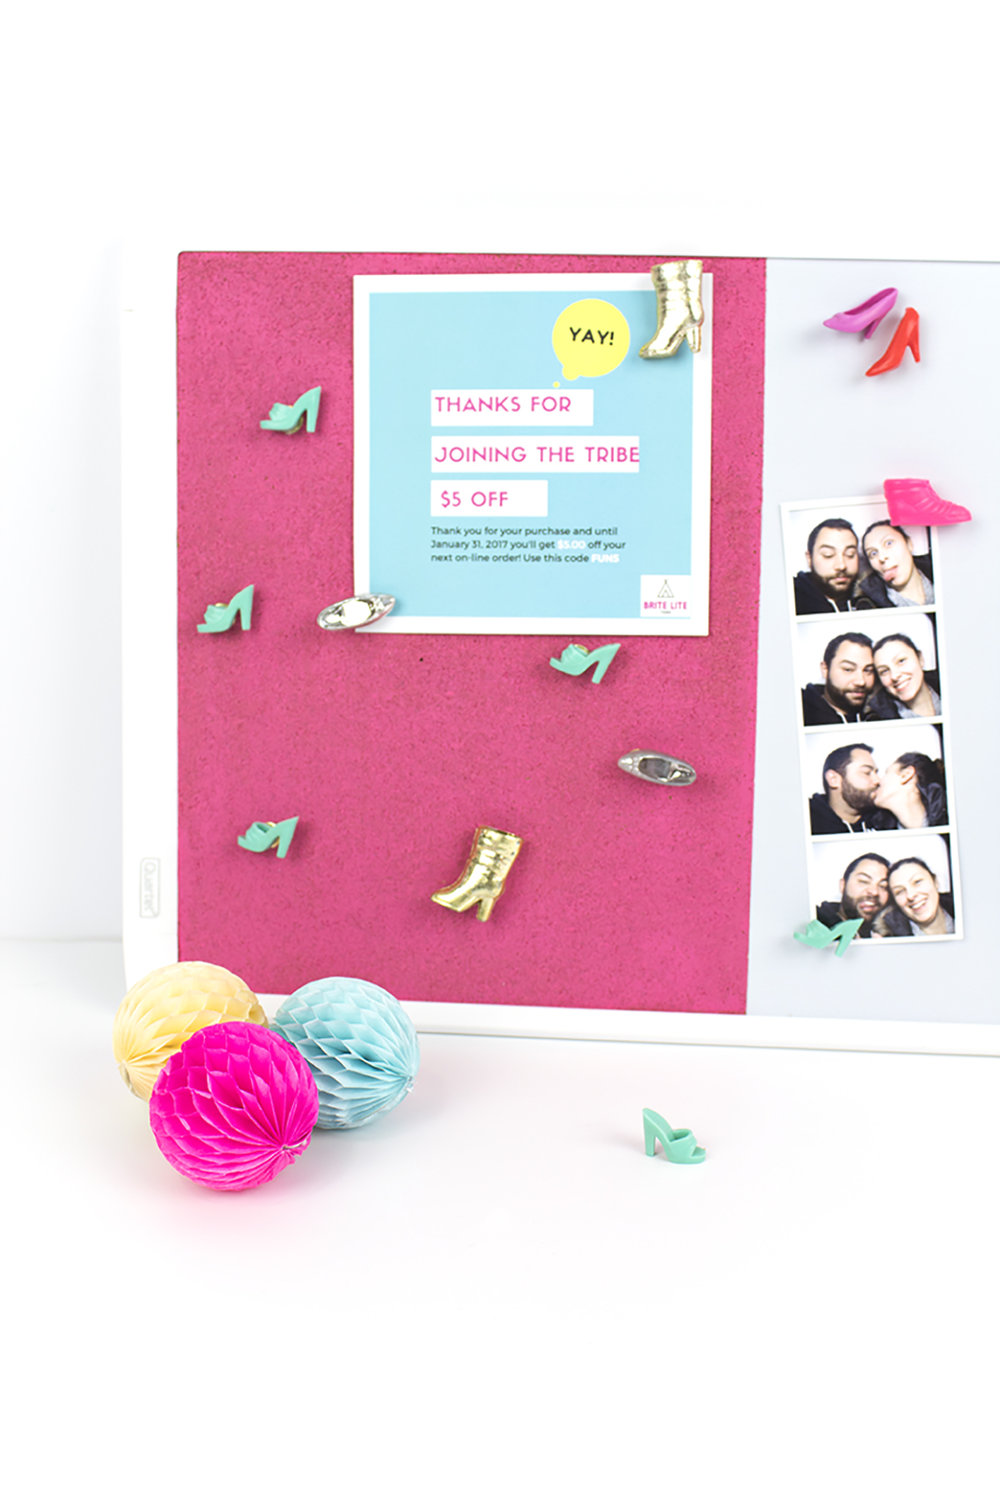 I decided to use my slight obsession with Barbie to create this awesome pink cork board with matching Barbie shoe magnets and thumbtacks. Click for the full tutorial! #deskorganization #barbieclothes #corkboardideas